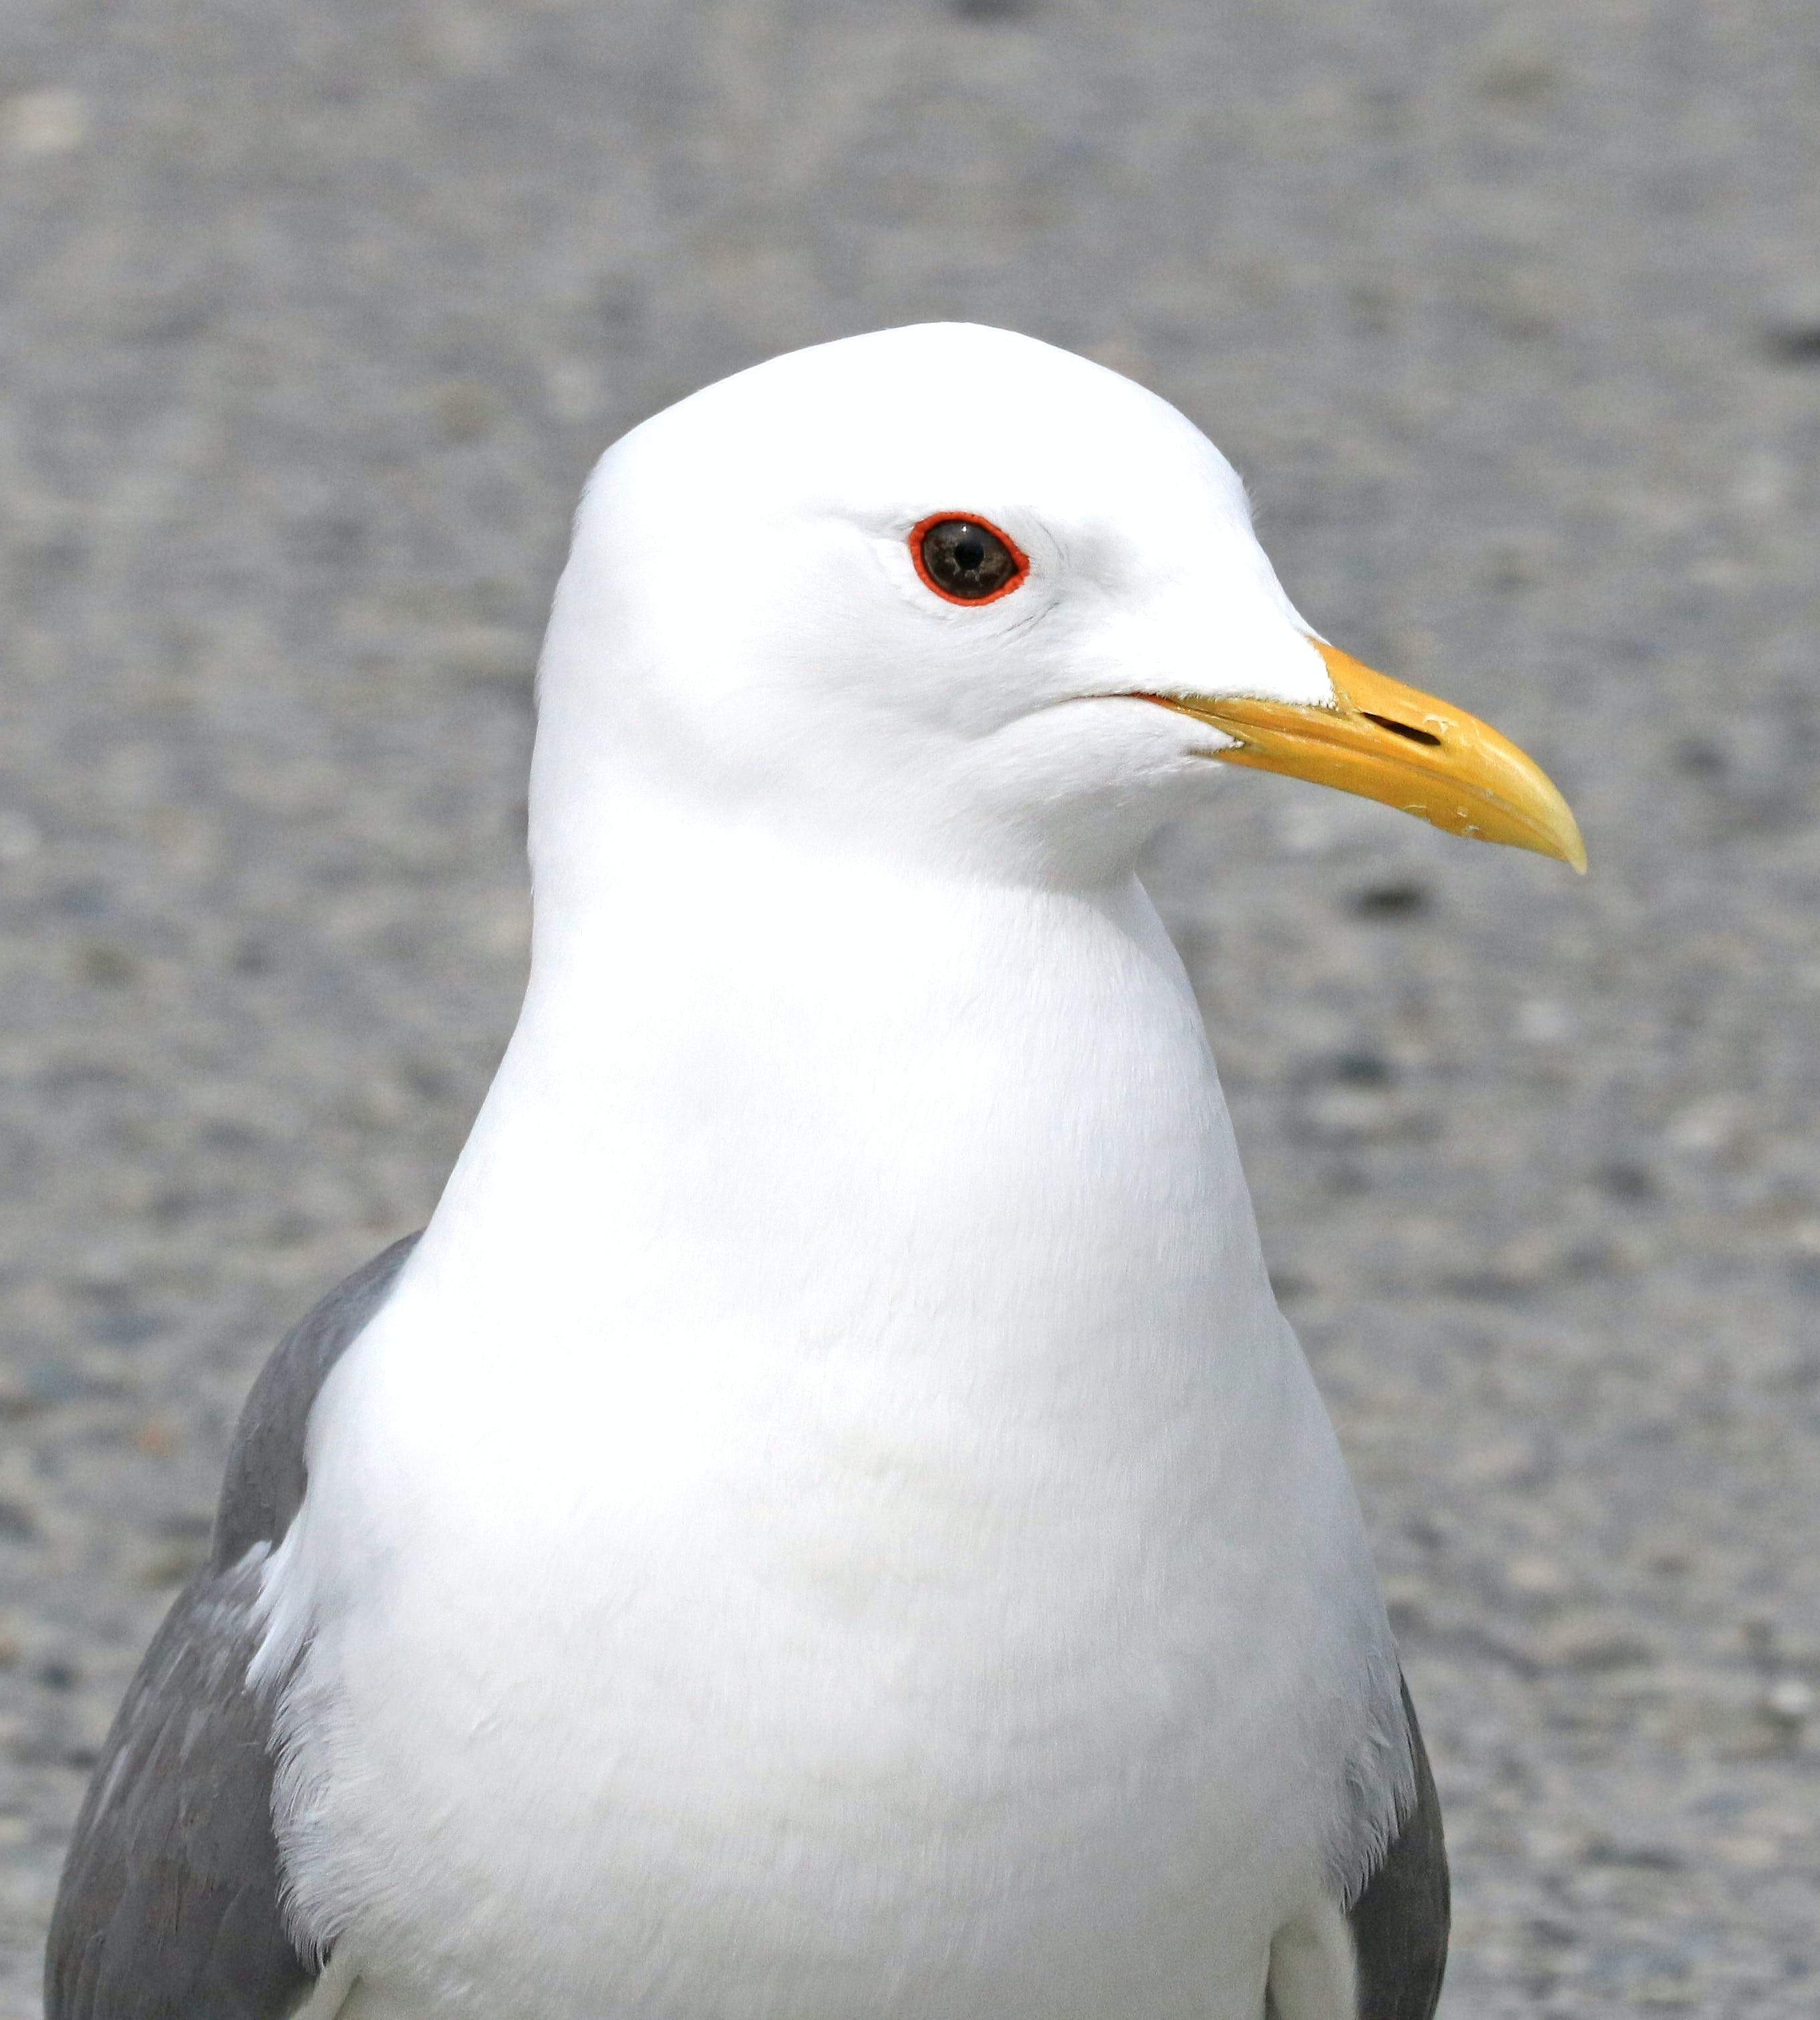 Closeup Photography of White and Grey Seagull